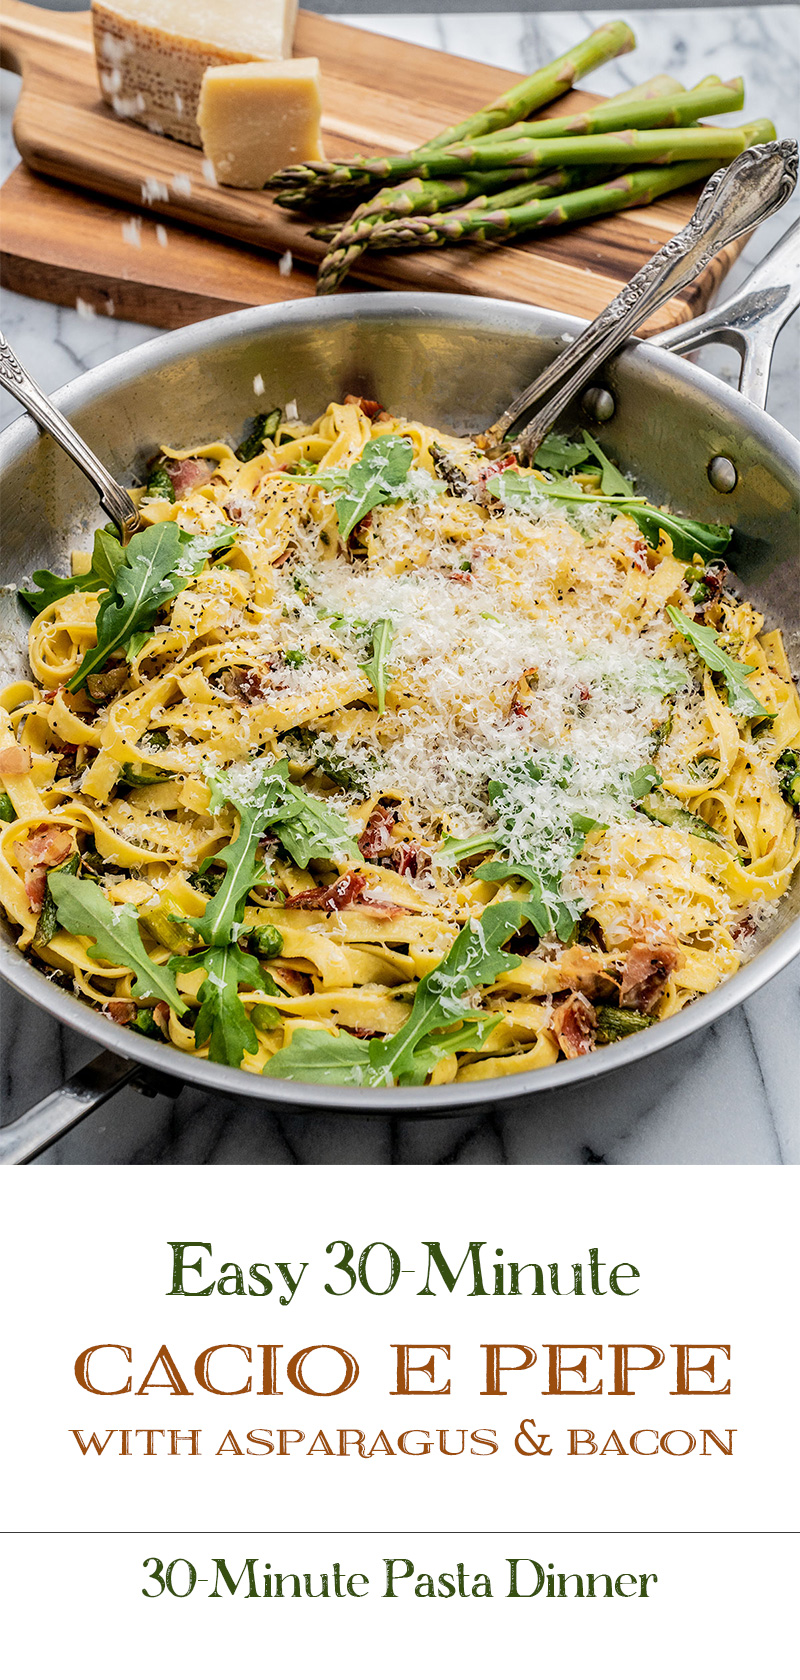 Easy-30-Minute-Cacio-e-Pepe-with-Asparagus-and-Bacon